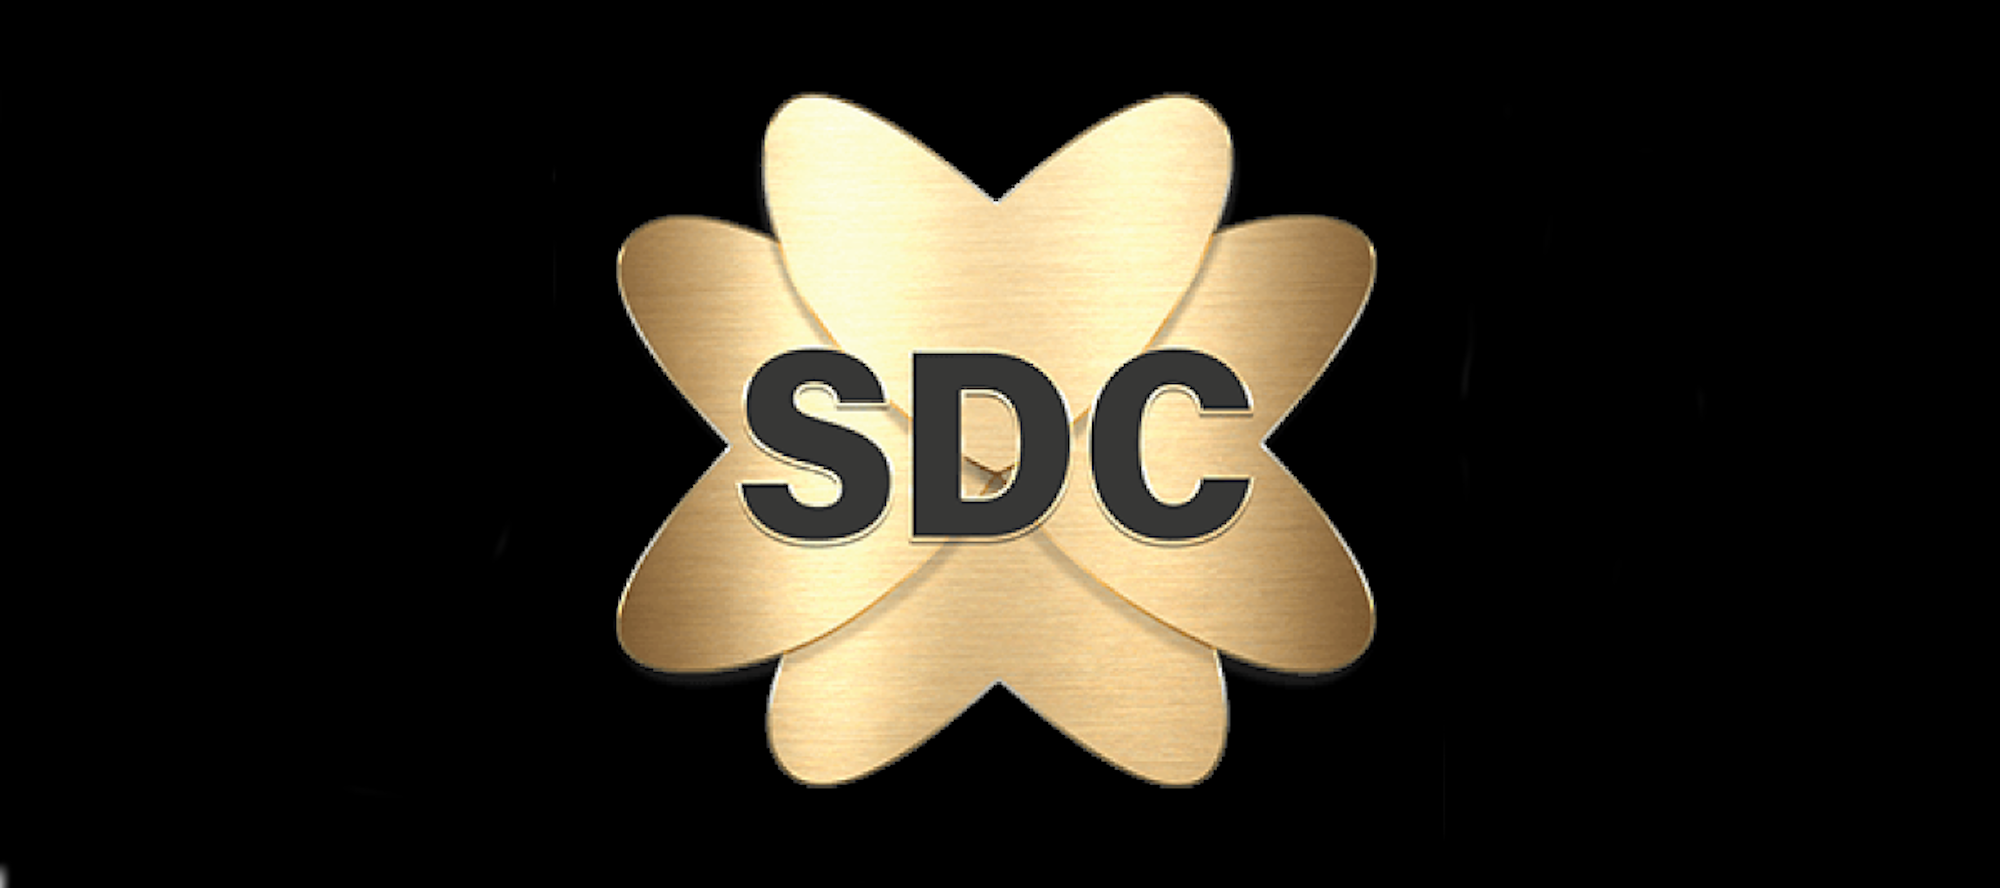 Sdc dating site